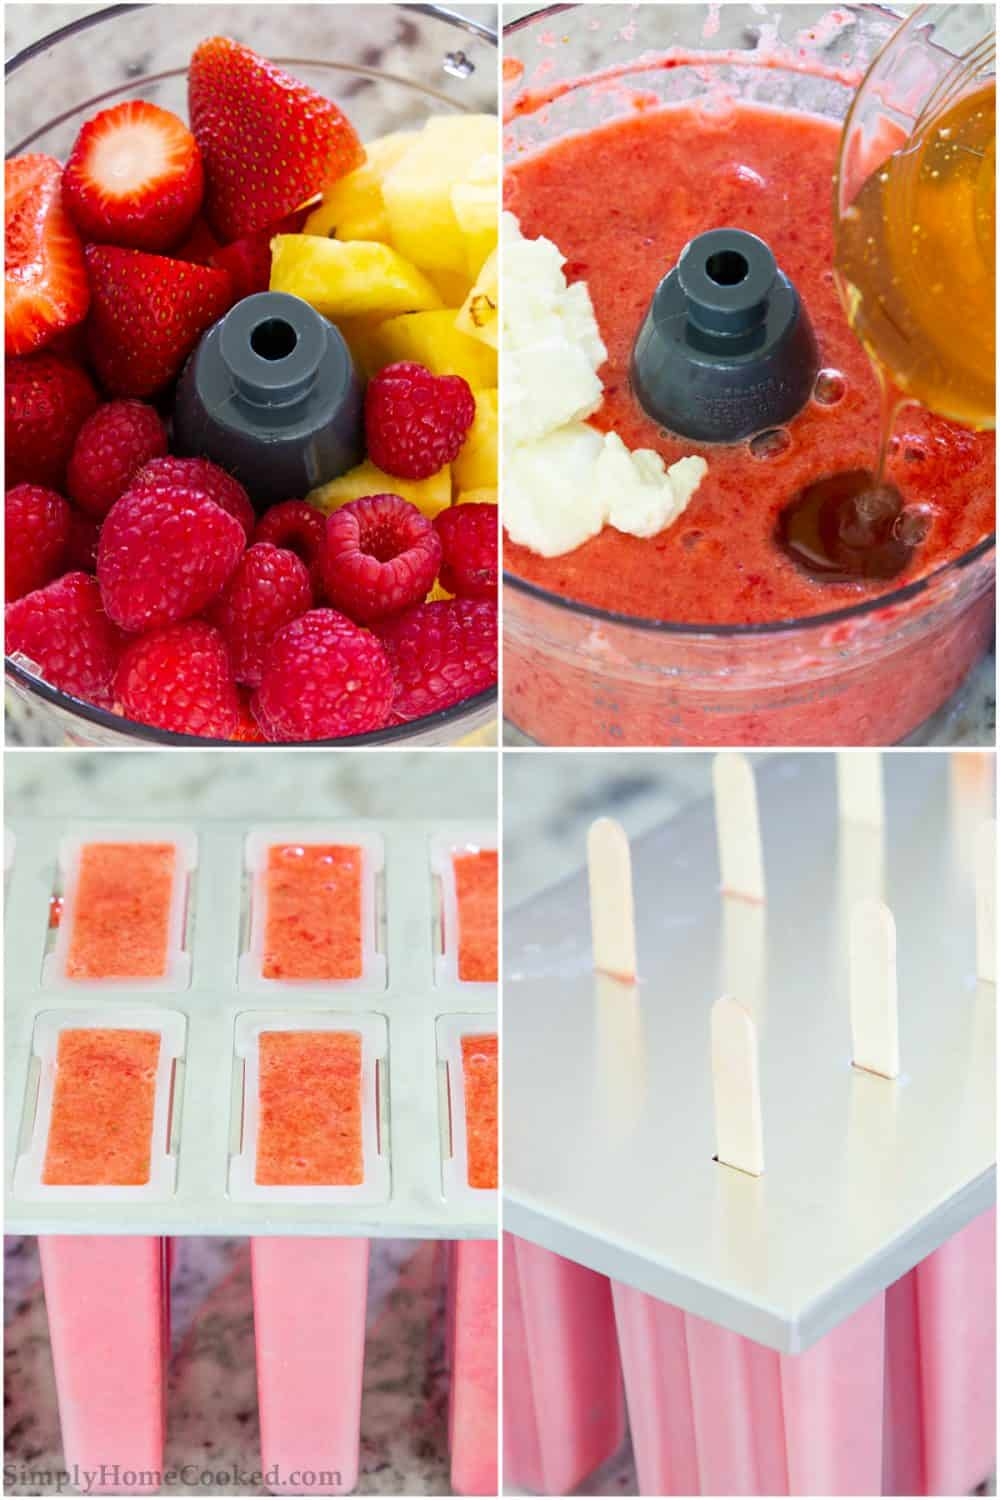 Photo collage of making fruit popsicles from blending to pouring into molds